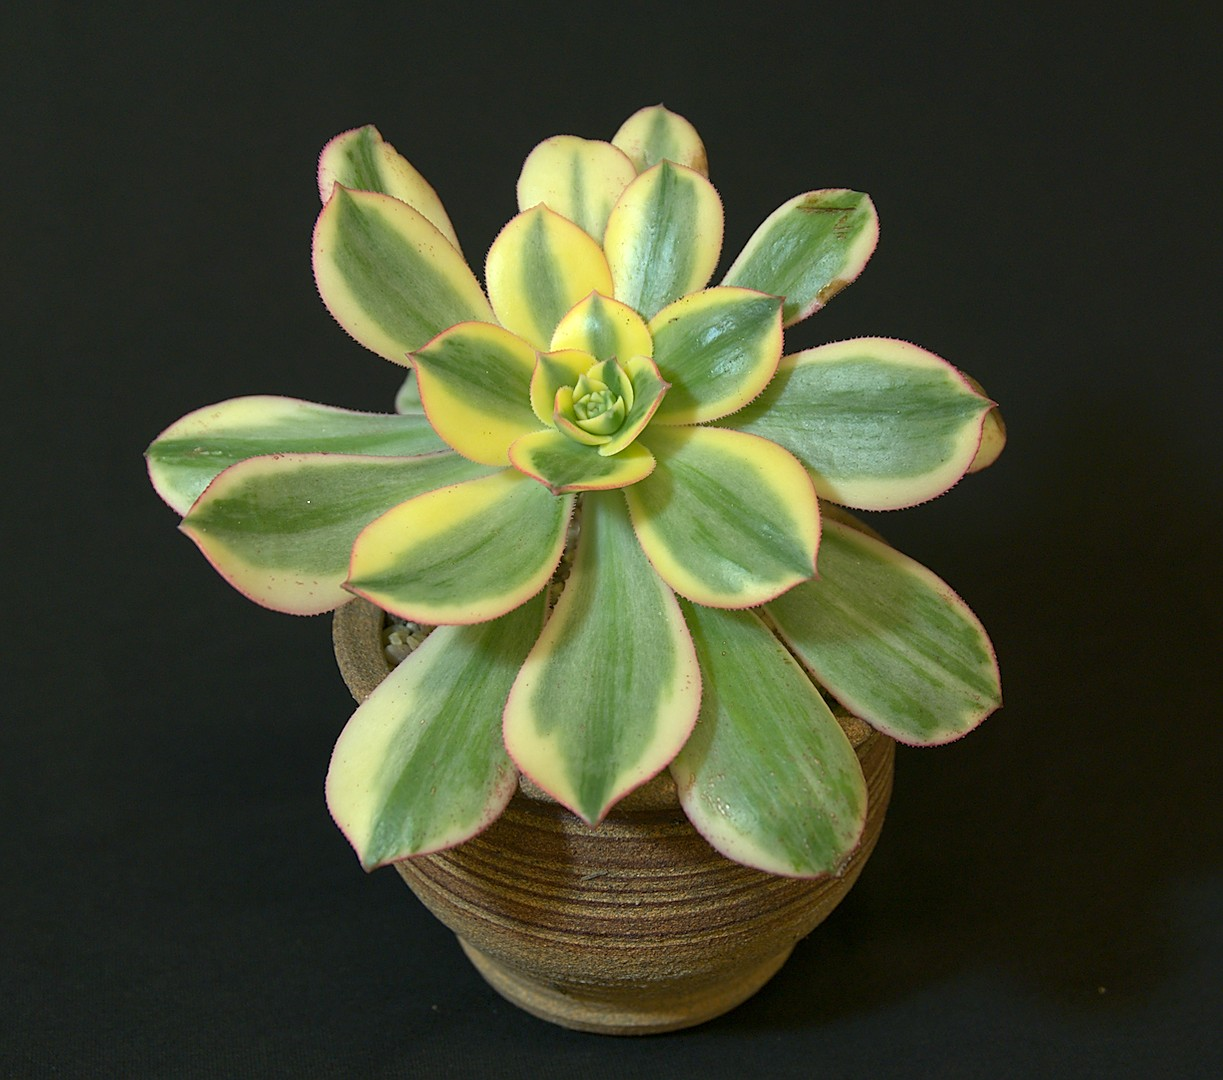 SCCSS 2019 March - Winner Novice Succulent - Ted Johnson - Aeonium 'Sunburst'